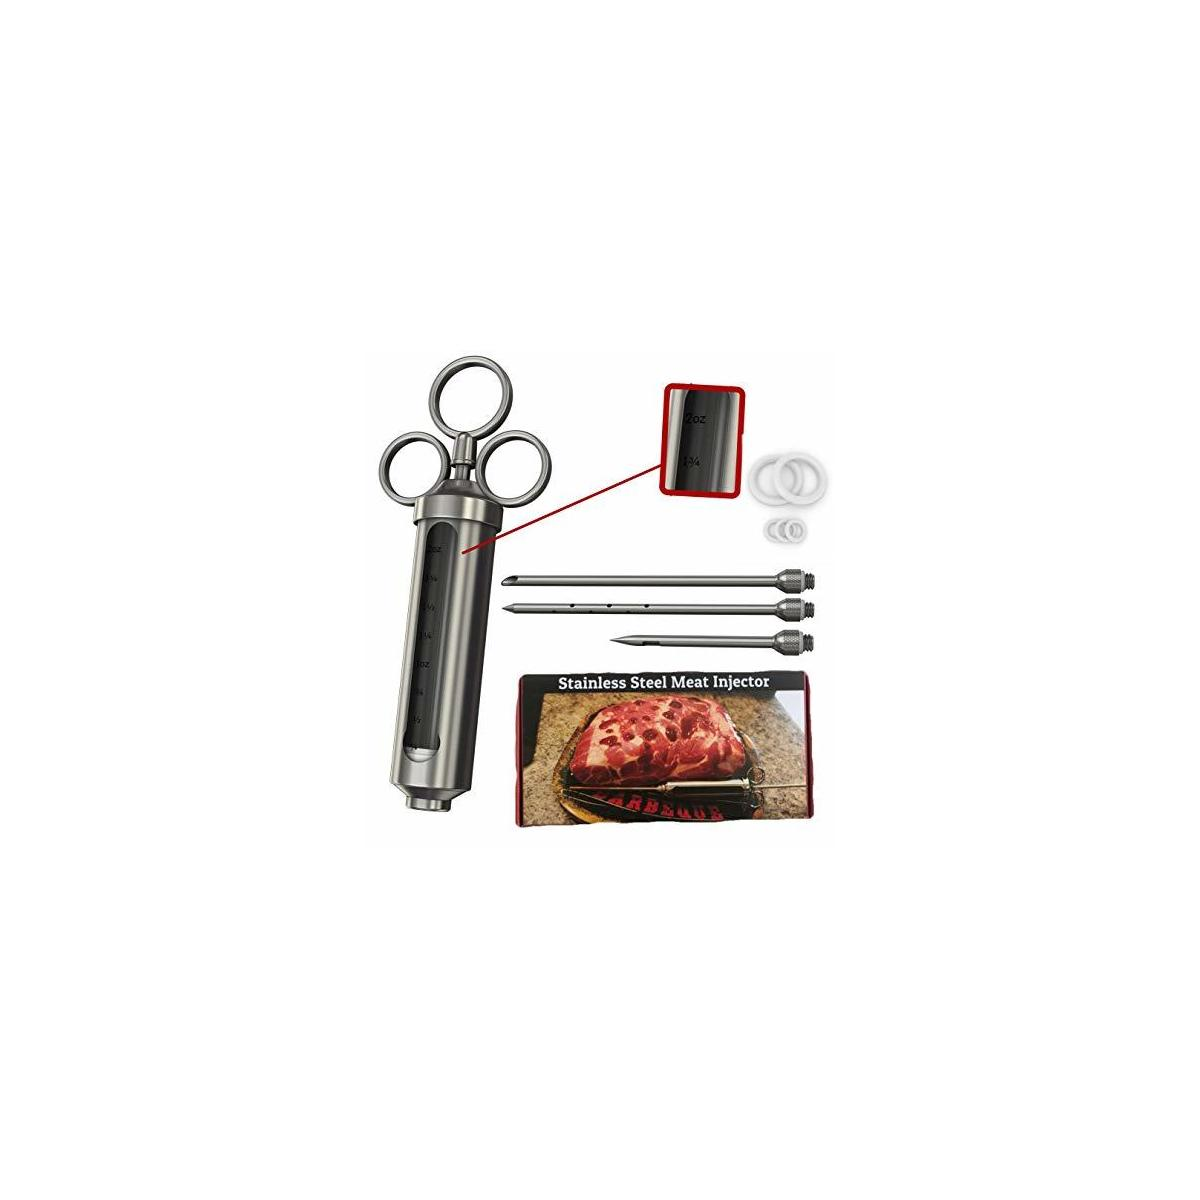 Meat Injector - 304 Stainless Steel 2.3-oz BBQ Injection Kit Marinade Seasoning Window for Cooking Grill Smoker Barbecue - Syringe Injects Cajun Flavor in Chicken Turkey Beef - 3 Professional Needles